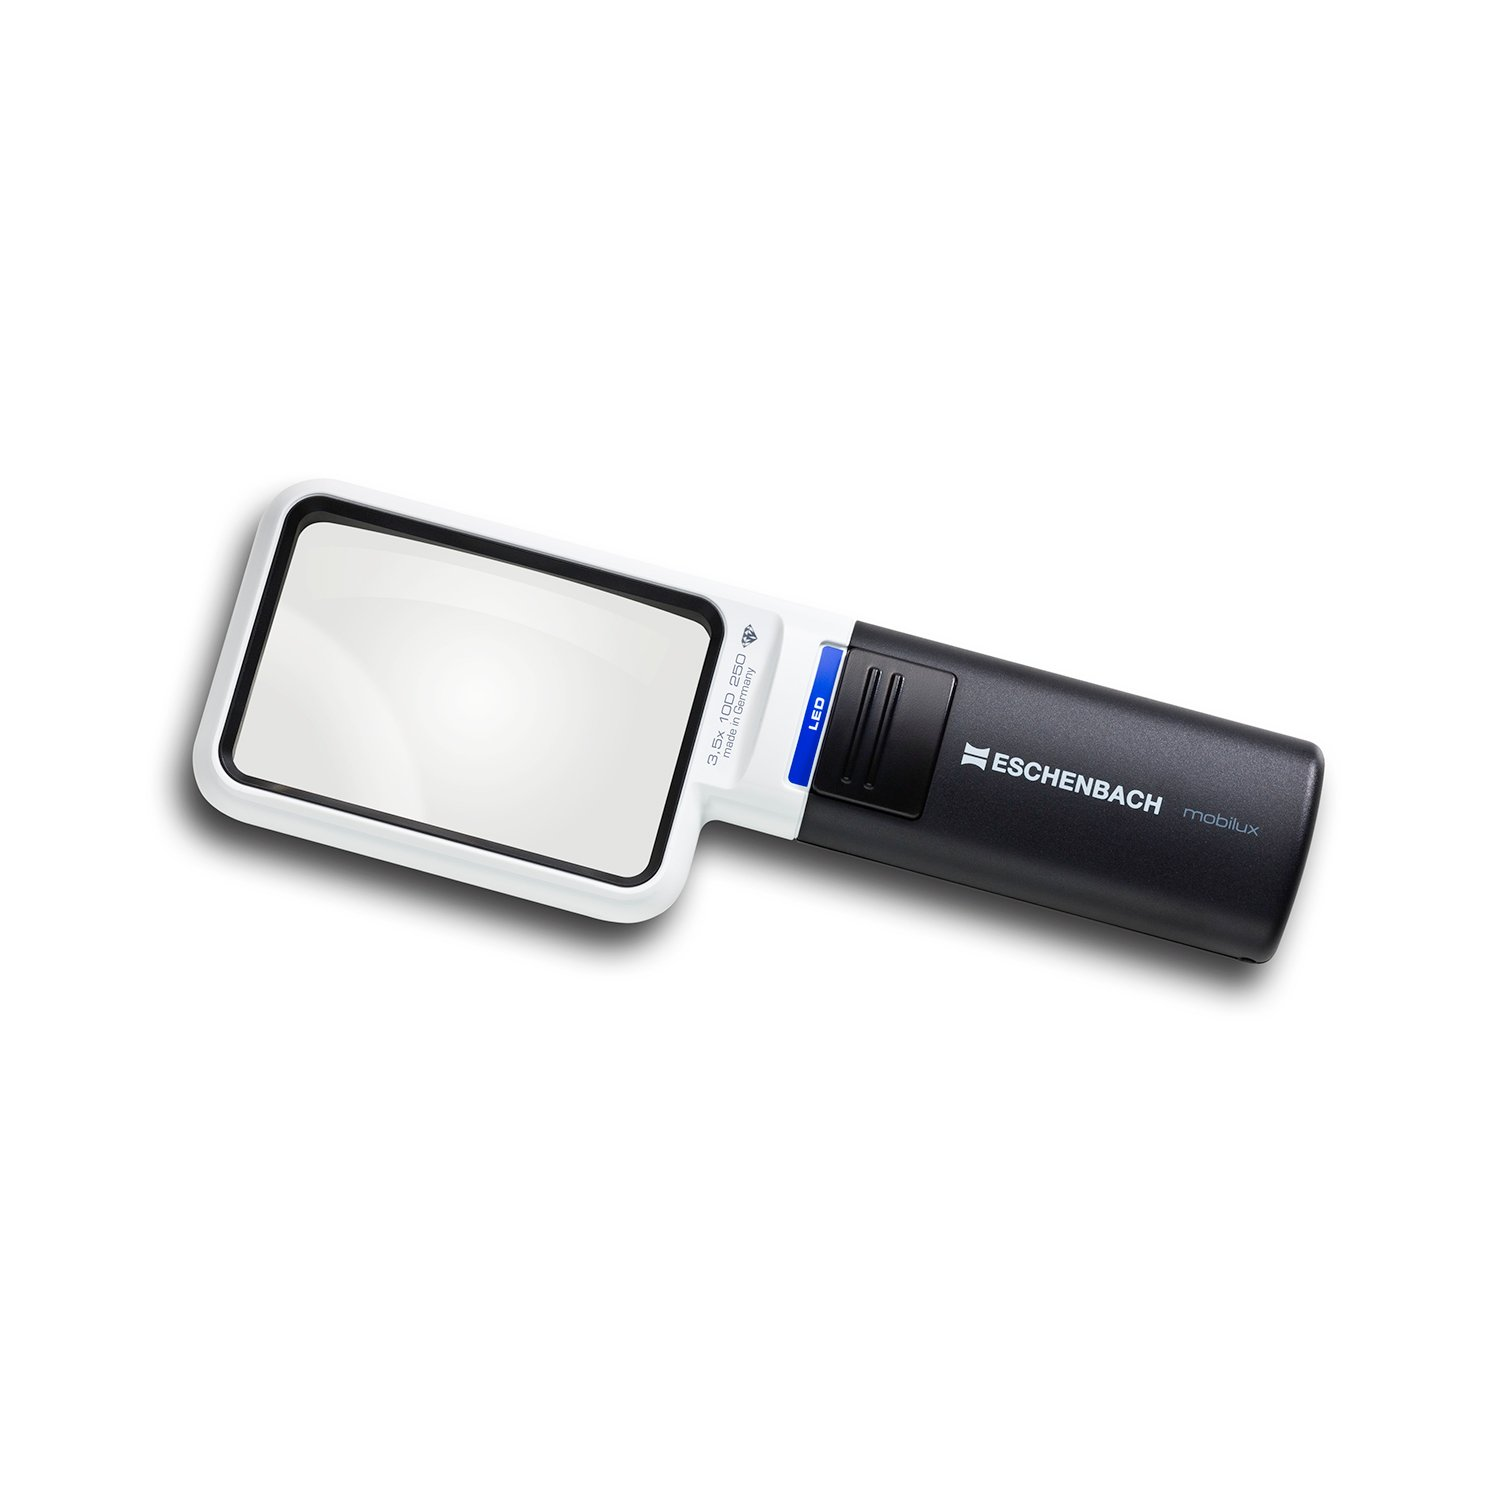 Mobilux Pocket LED Illuminated Magnifer - Eschenbach 3.5x by Eschenbach Optik Gmbh